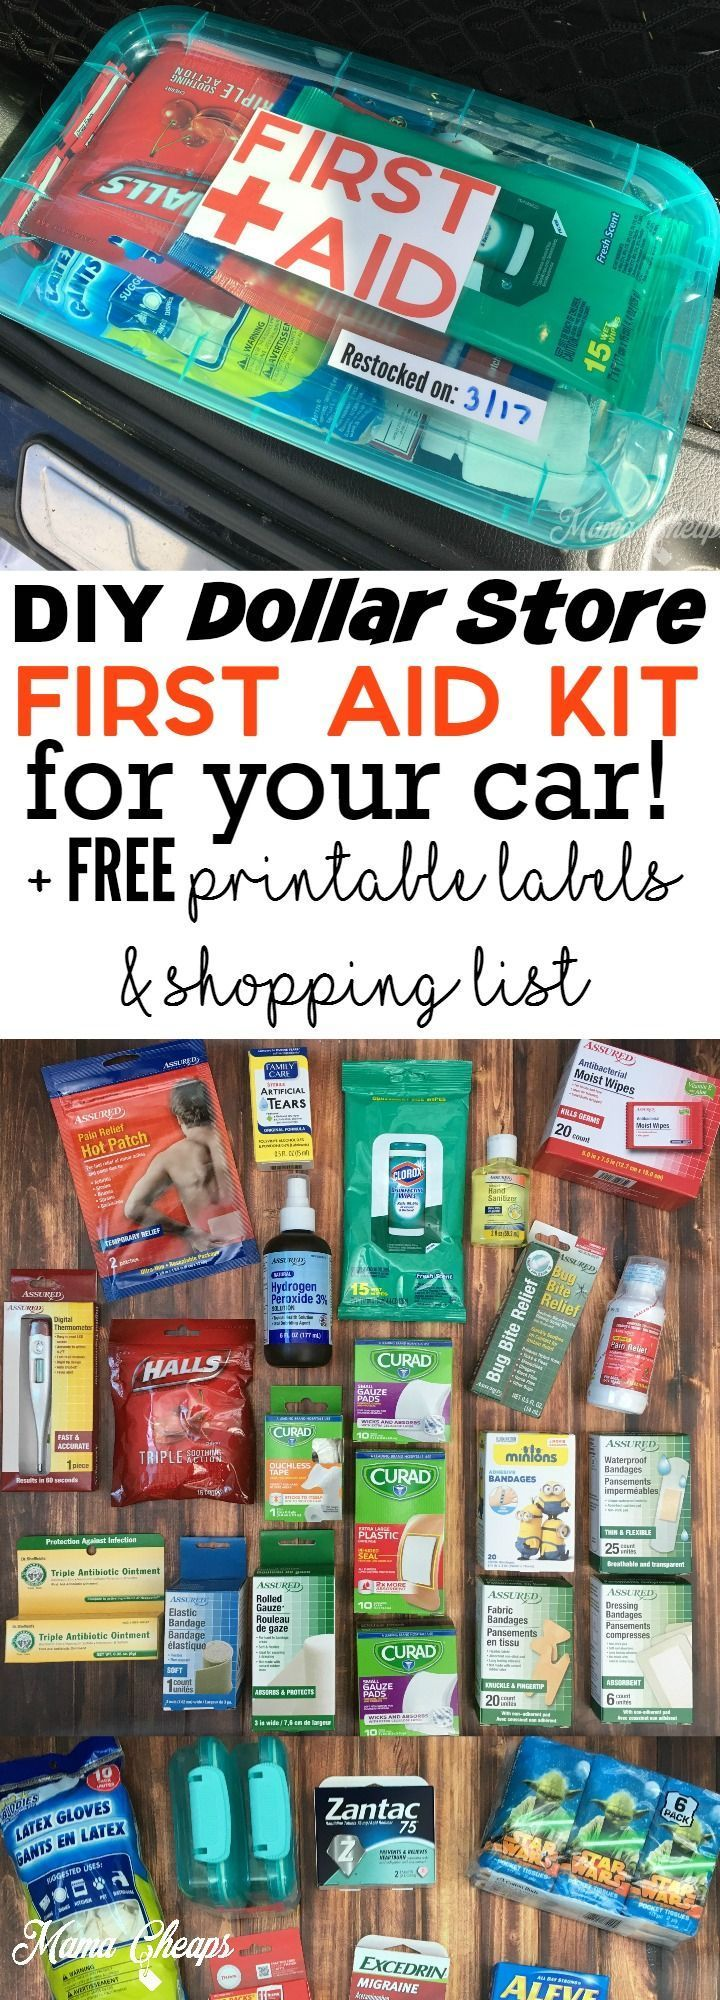 Photo of DIY Dollar Shop First Aid Kit for Your Car + FREE Printable Labels and Shopping List – Car Models